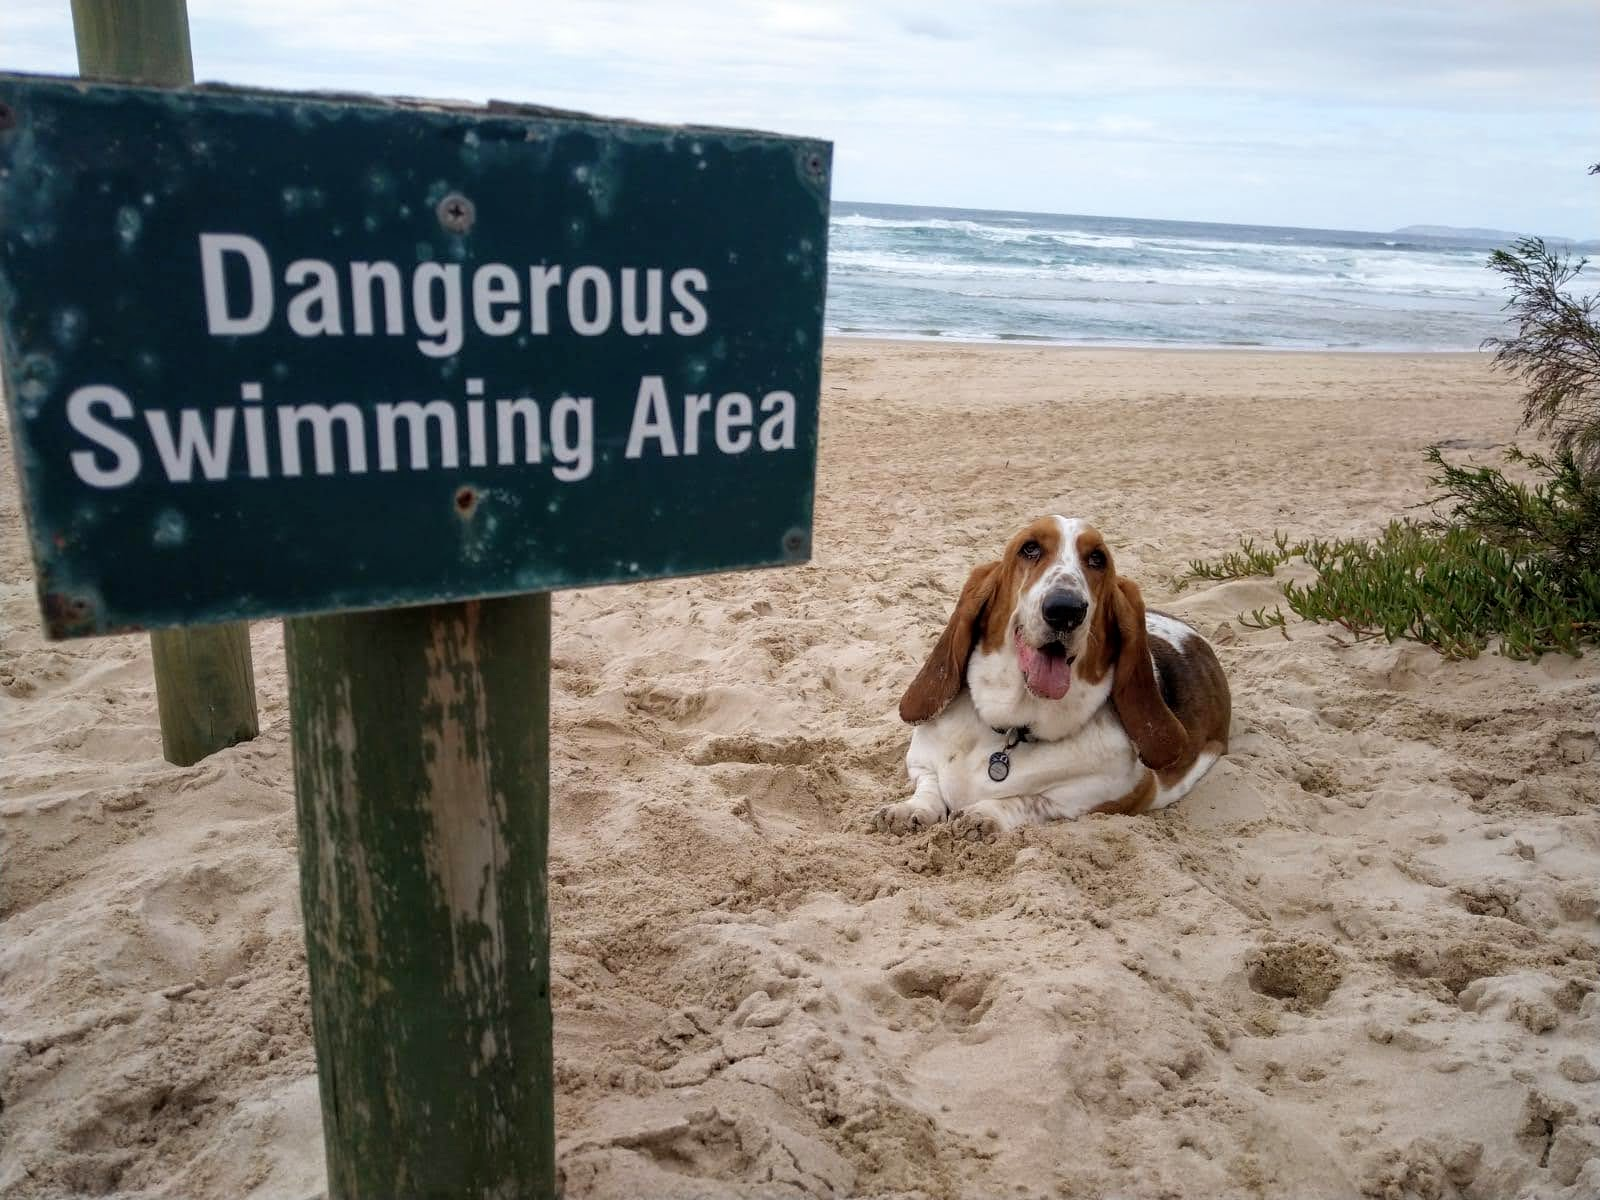 Chloë the basset hound lying next to a Dangerous Swimming sign on the beach